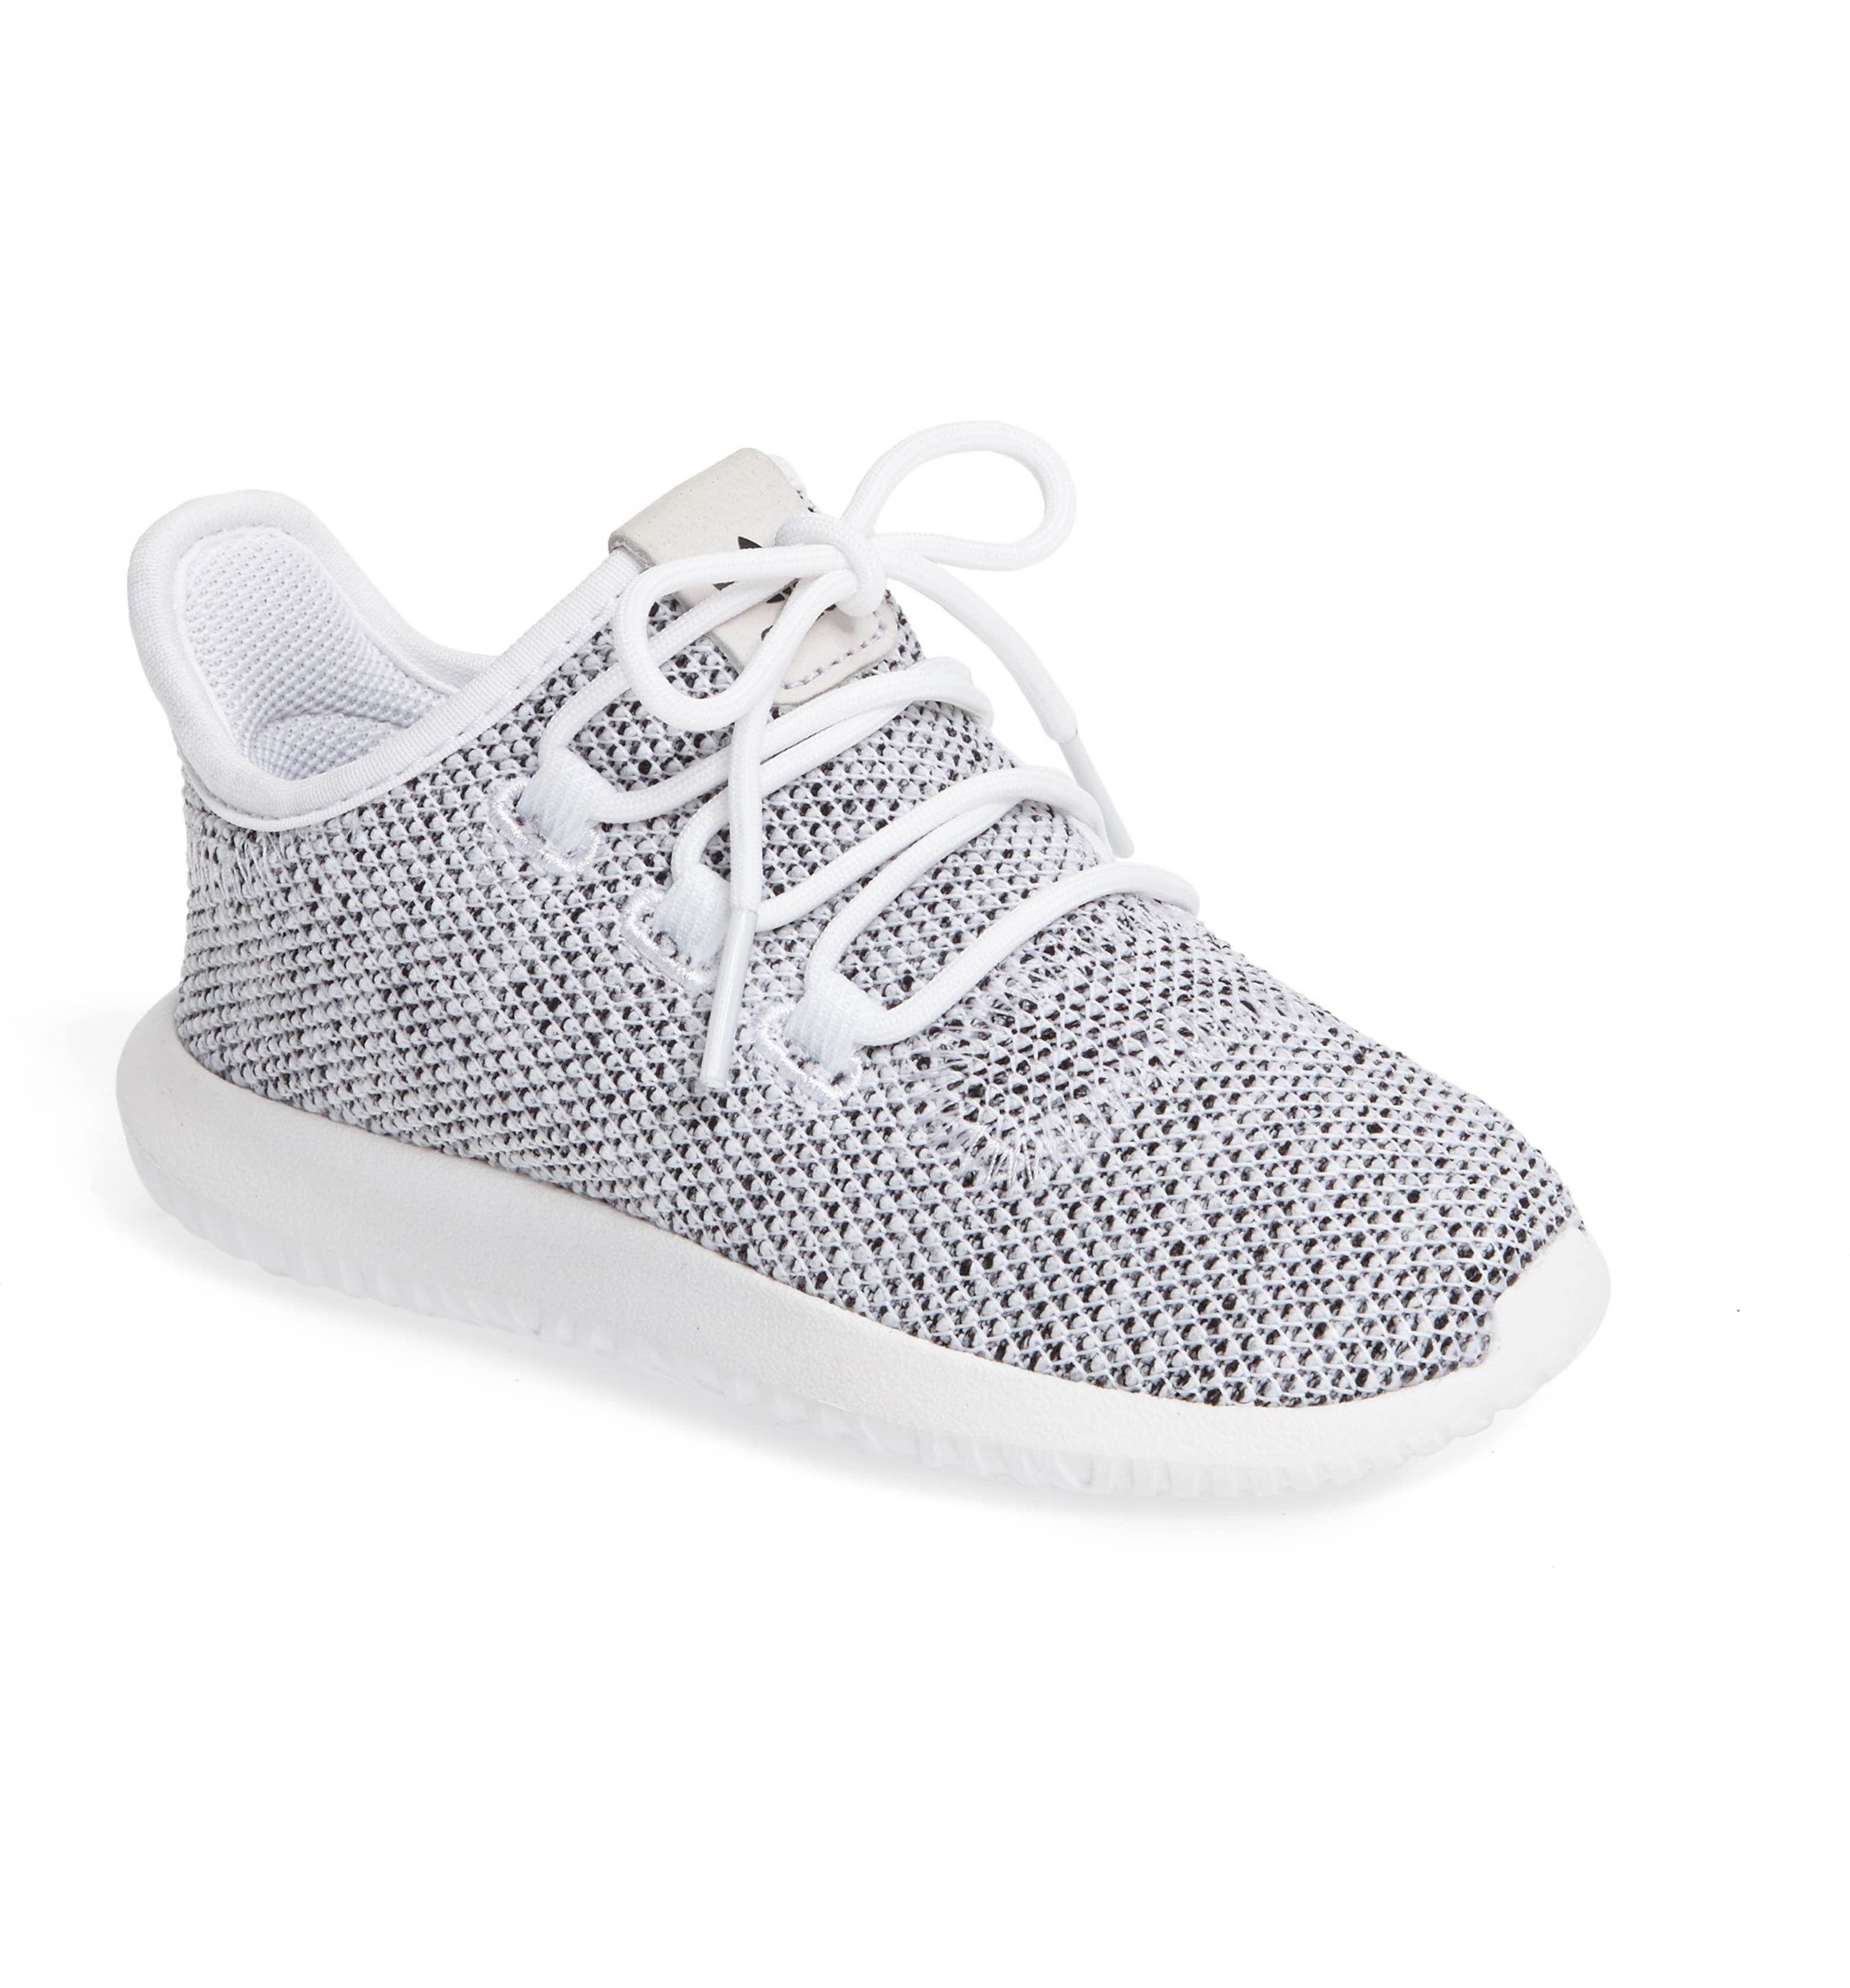 cheap for discount 5aeb0 91c17 Main Image - adidas Tubular Shadow 1 Knit Sneaker (Baby, Walker   Toddler)